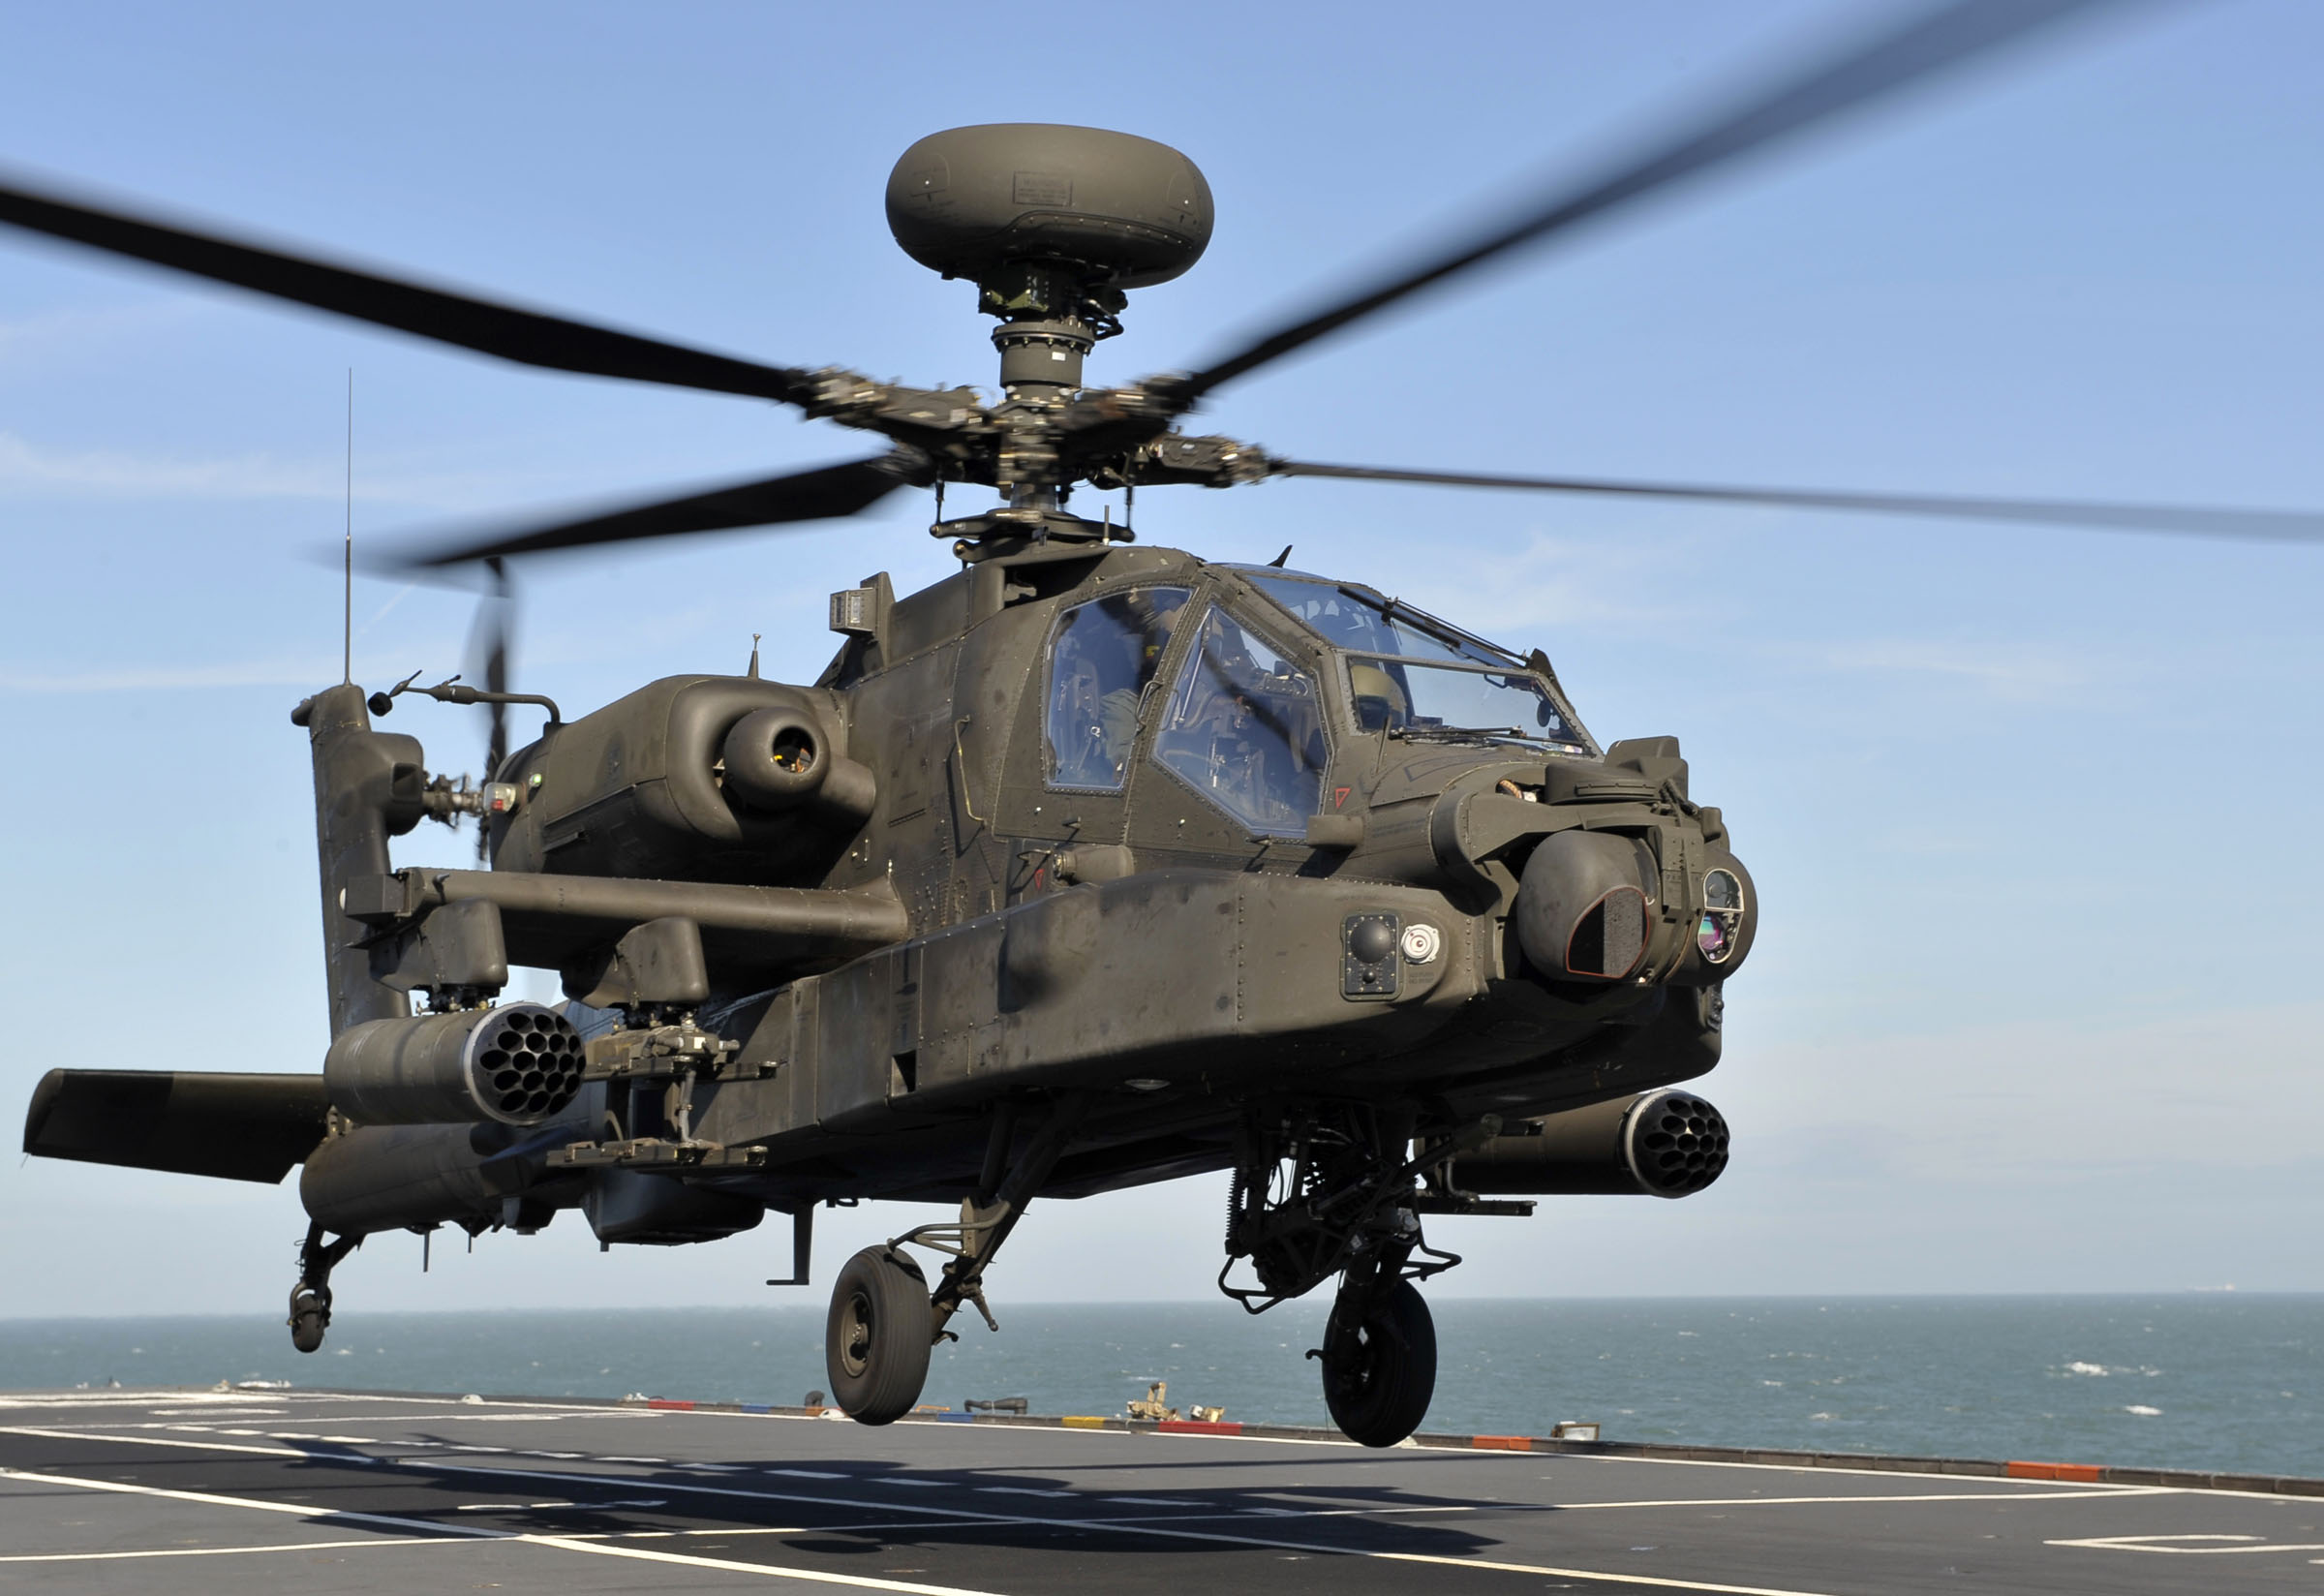 Elicottero Americano : File apache attack helicopter takes off from hms ocean mod